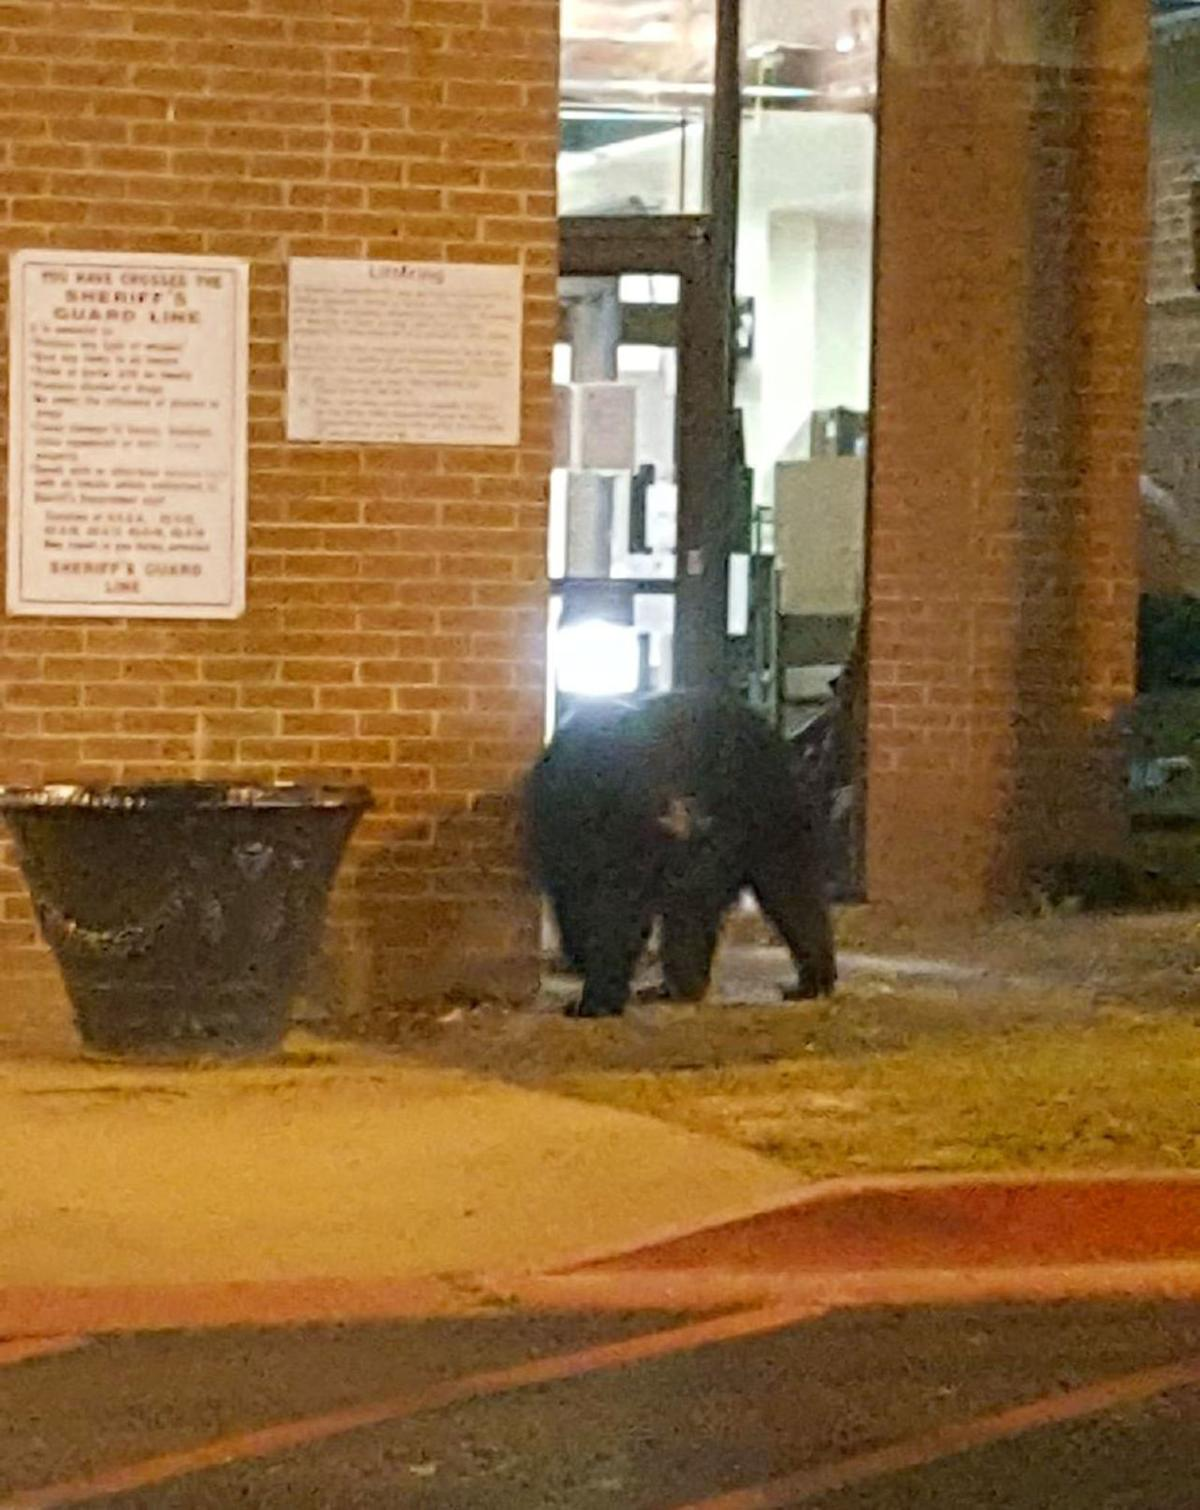 fulton county jail gets visit from bear | neighbornewsonline